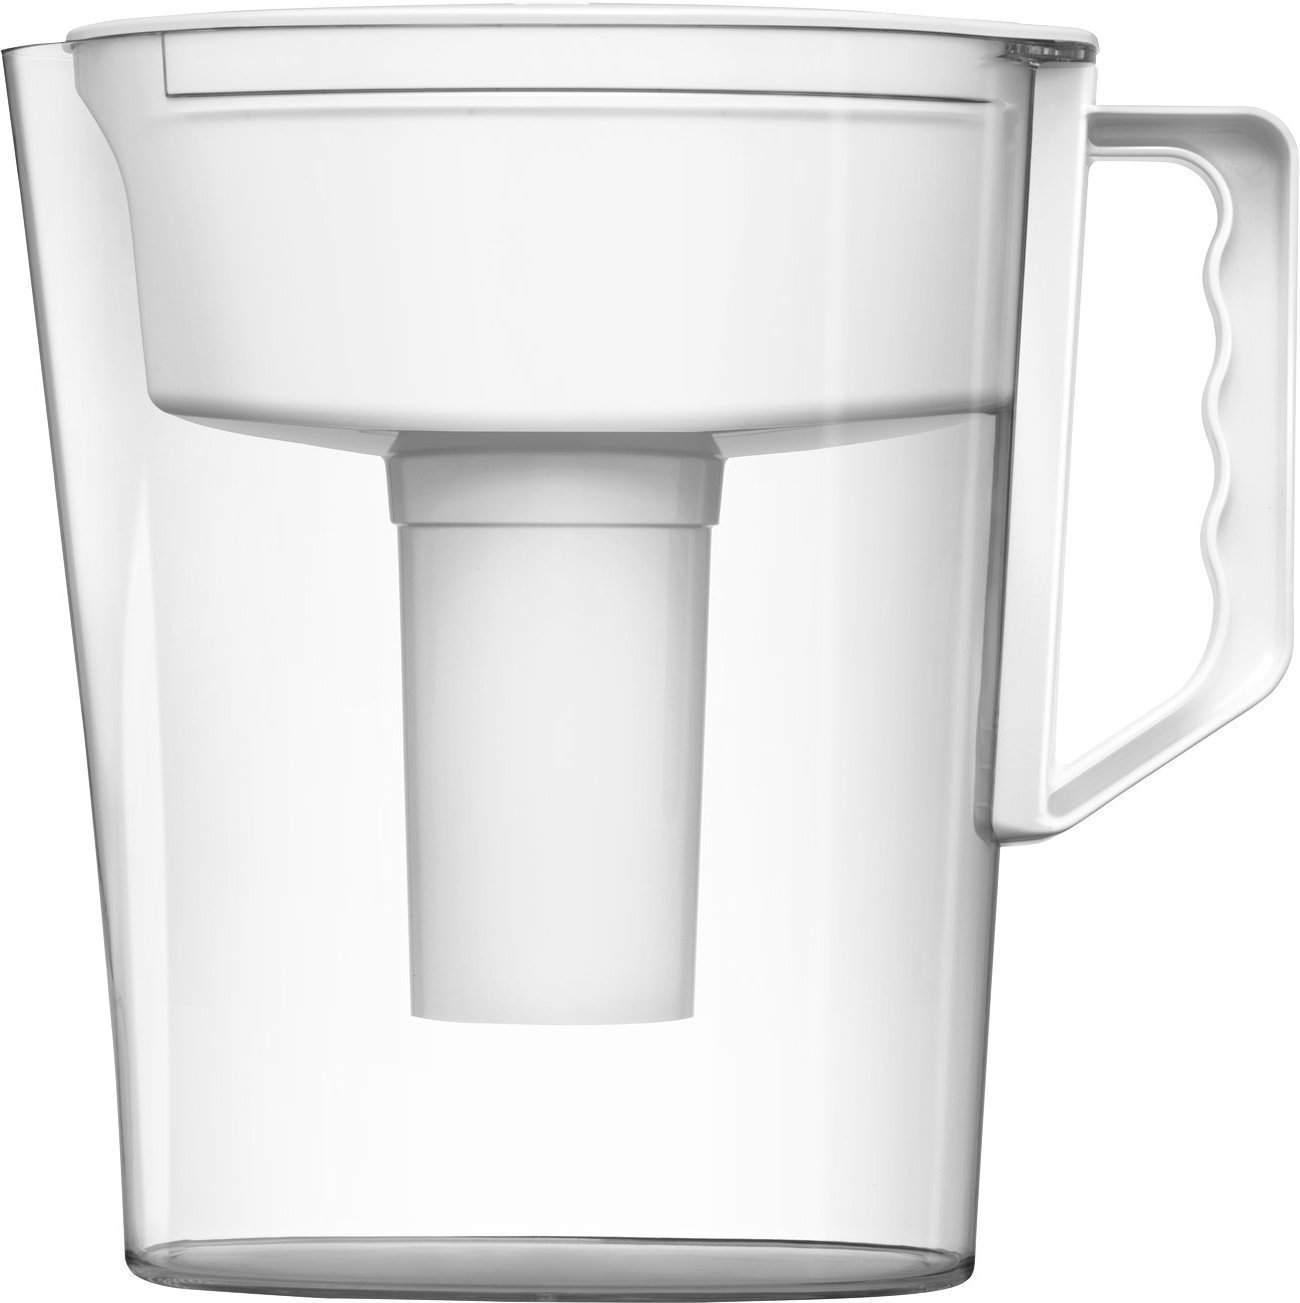 Brita Slim Water Pitcher with 1 Filter, BPA Free, White, 5 Cup